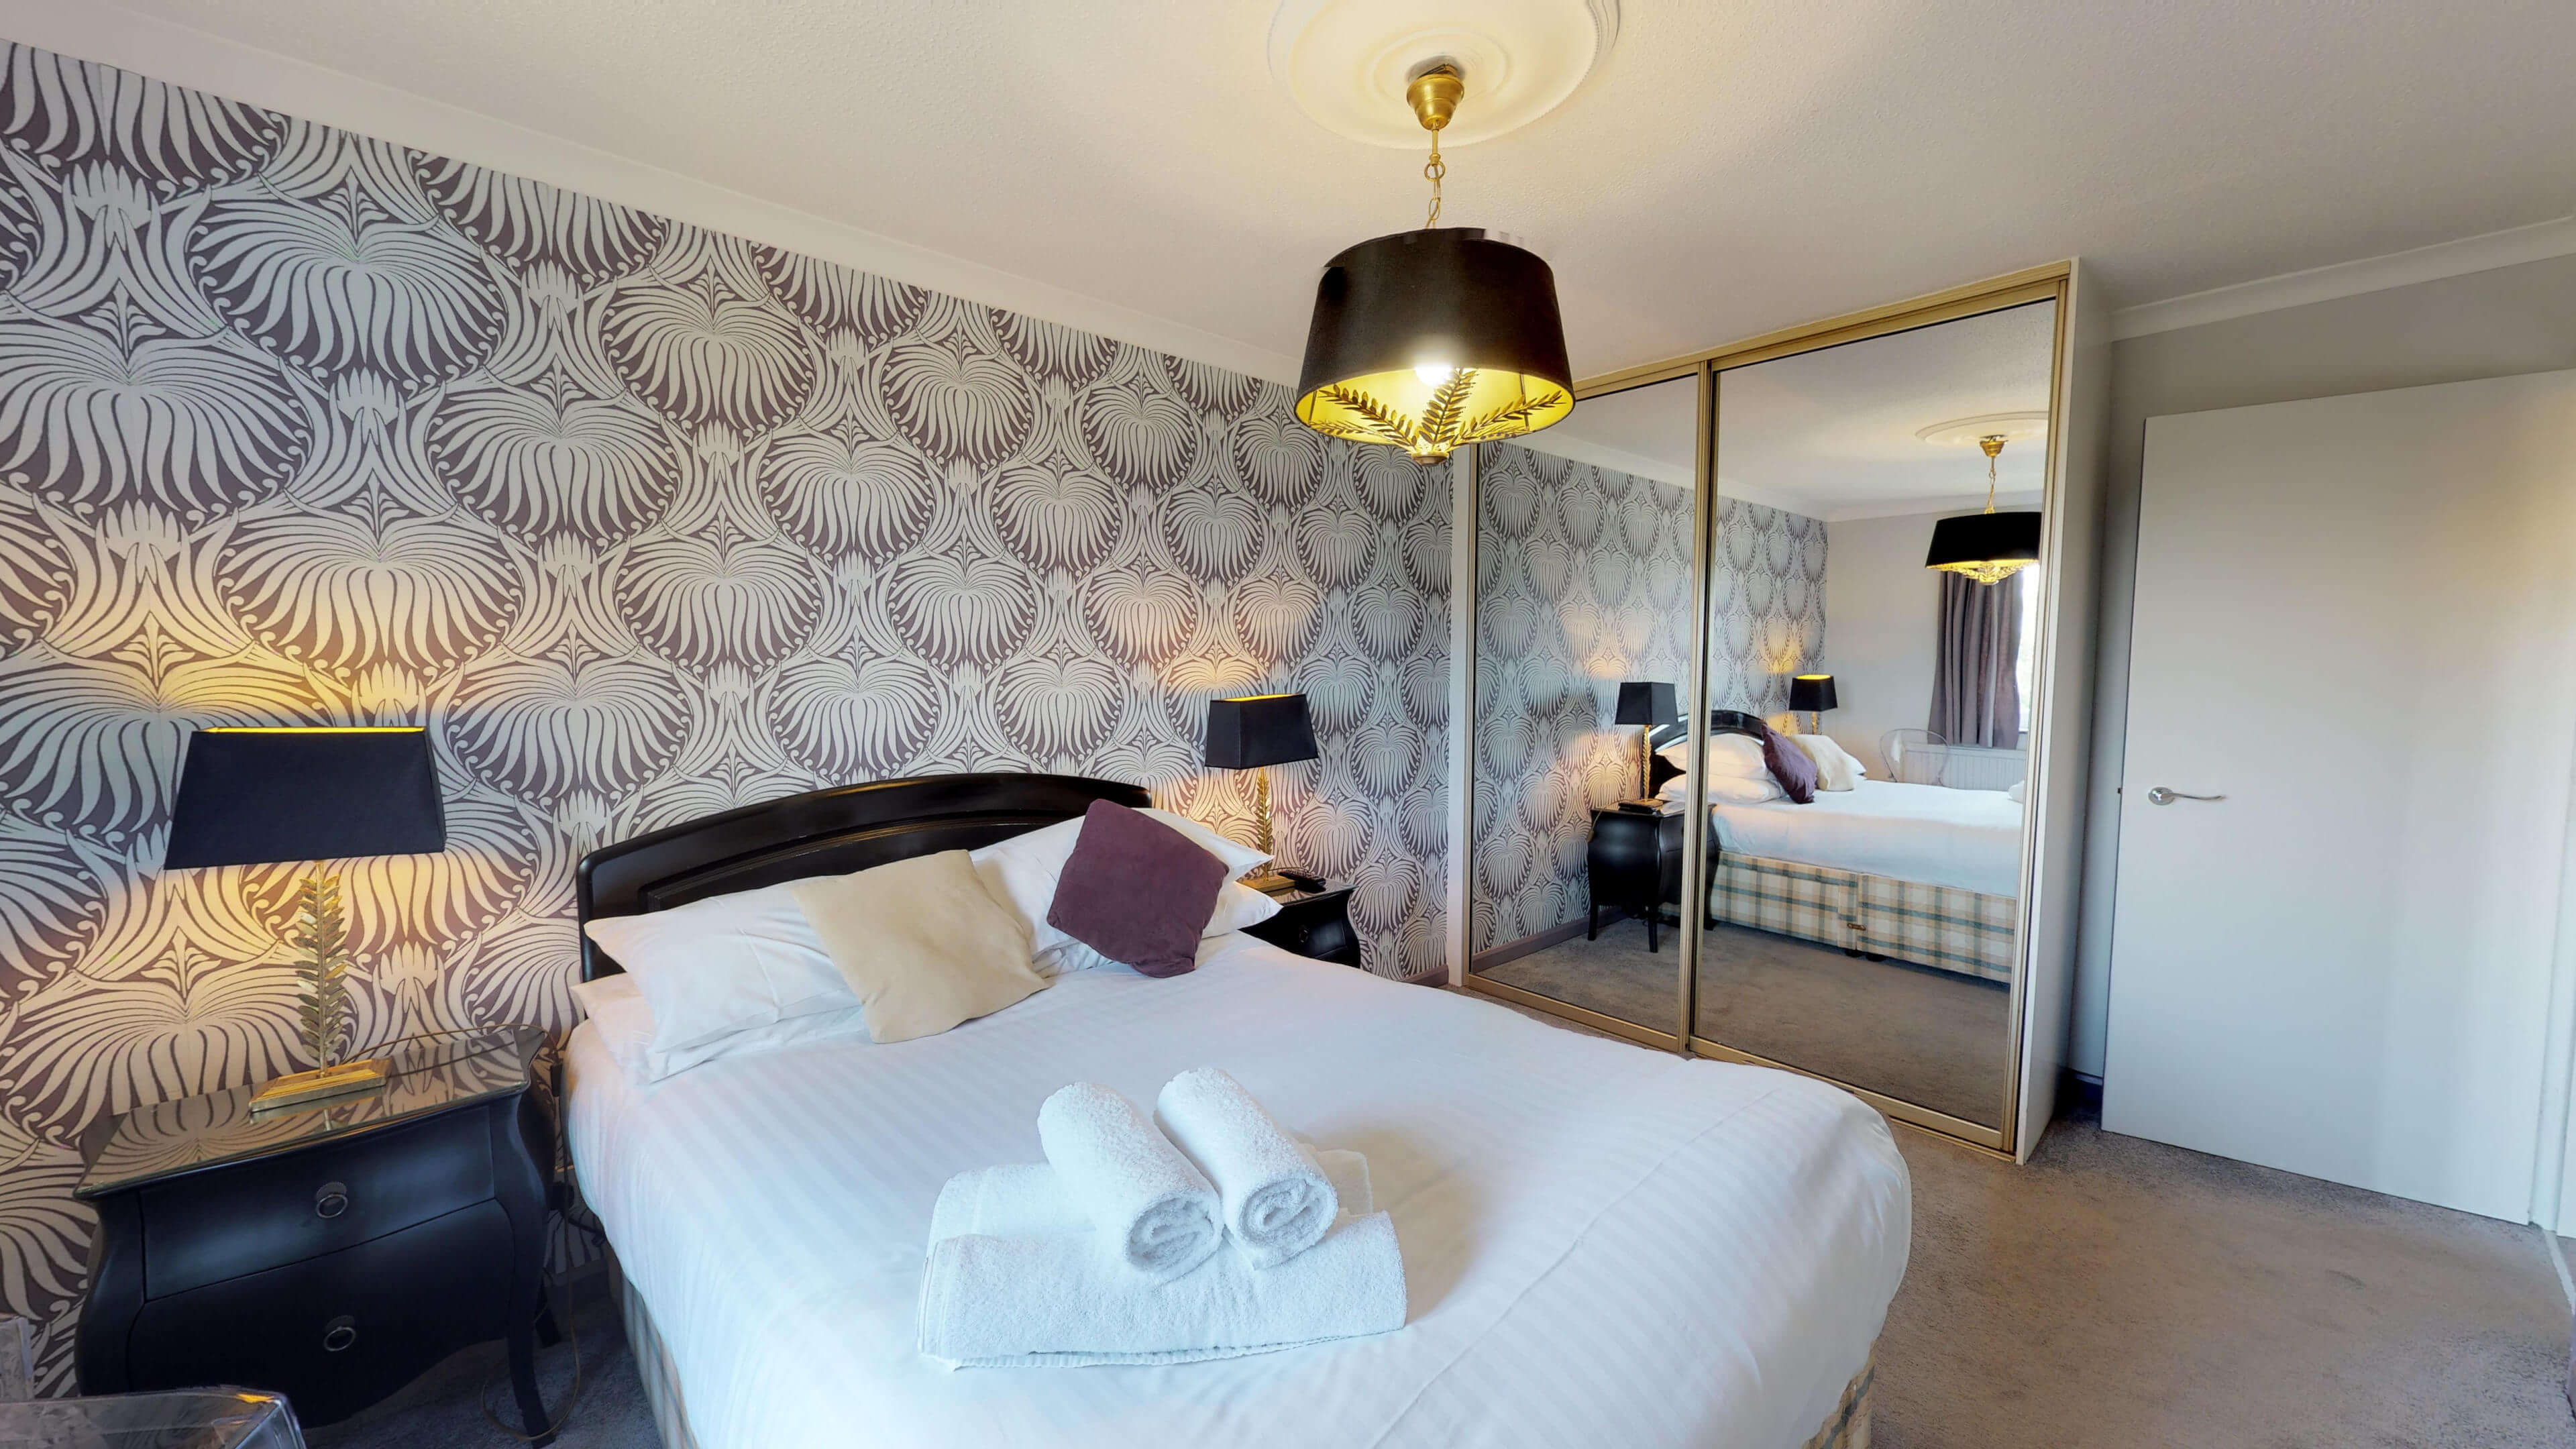 Short Stay Oxford The Firs Apartment 05232019 064937